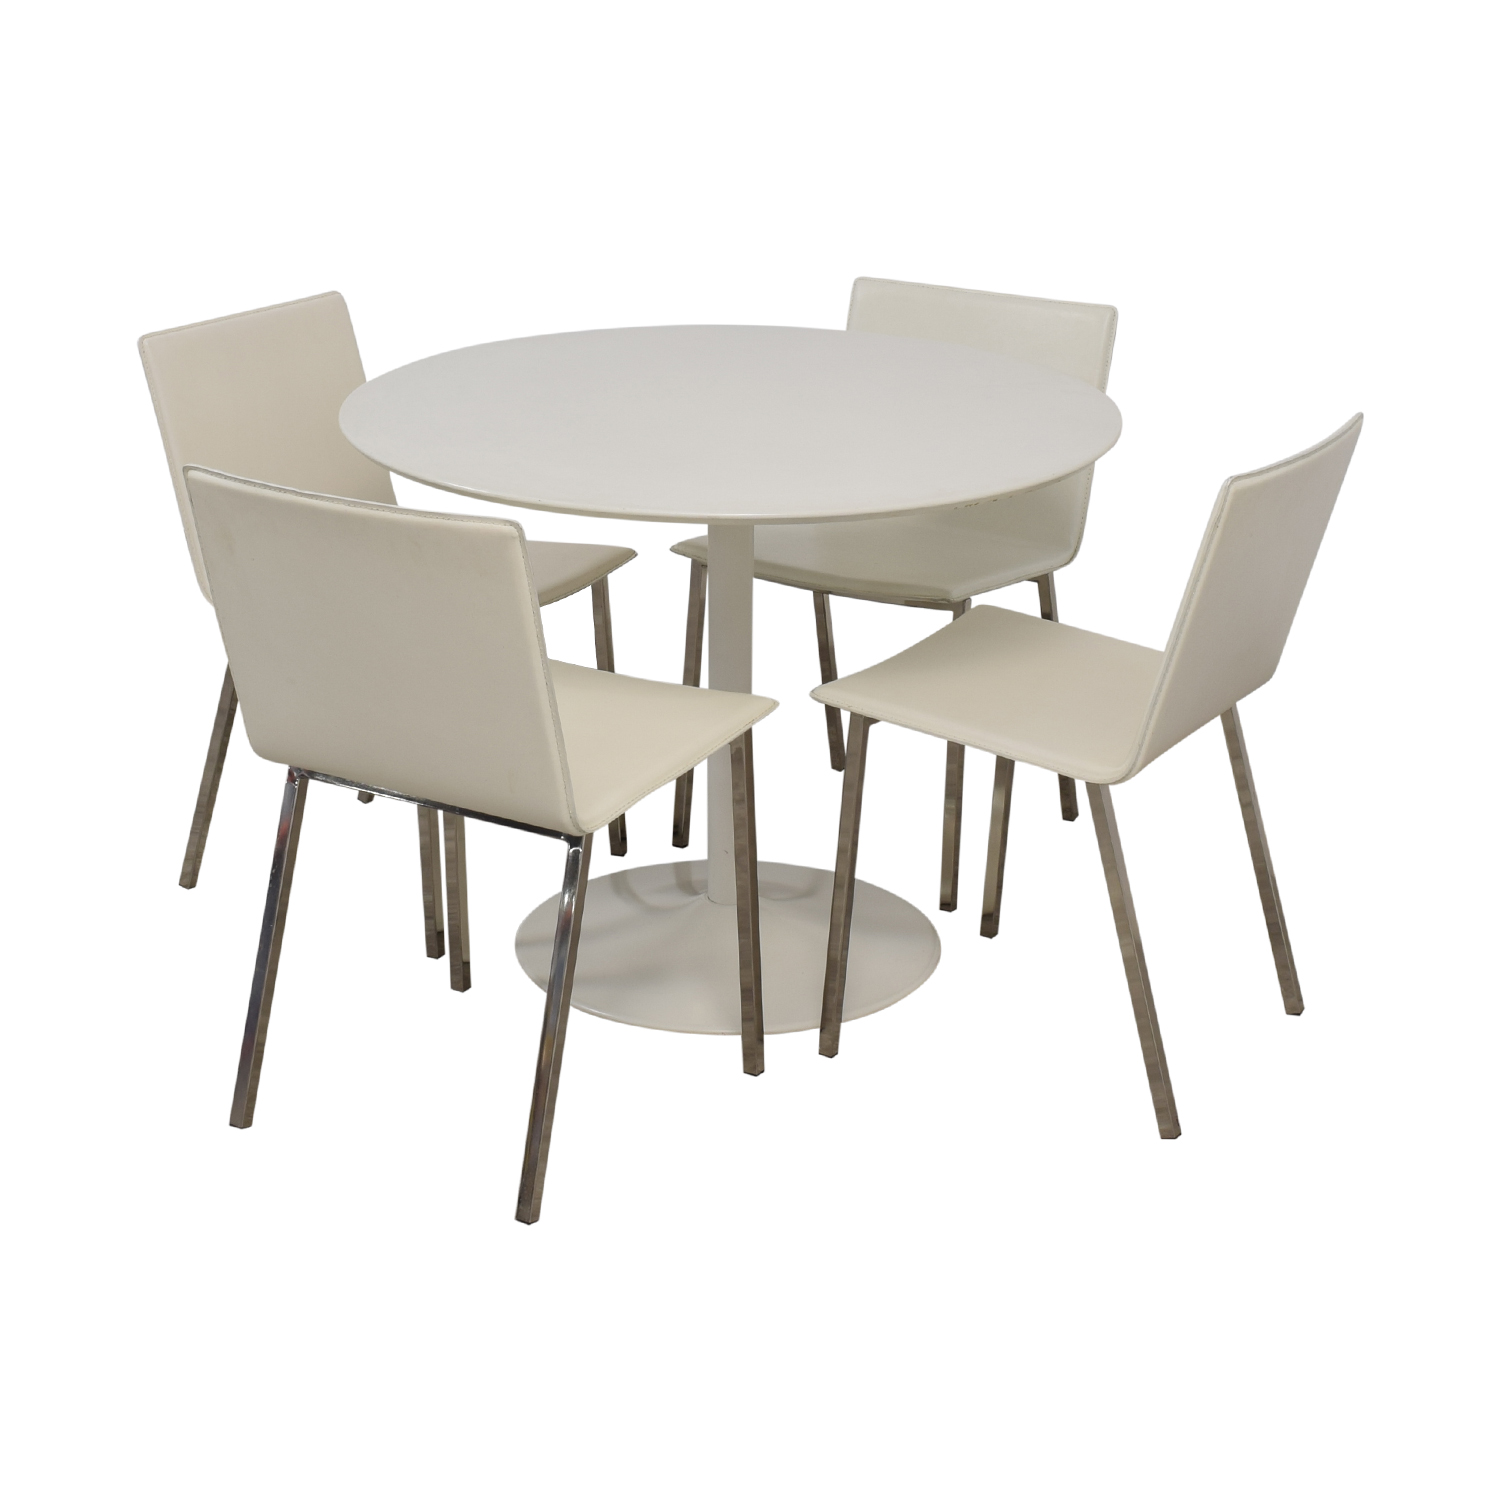 CB2 CB2 White Round Dining Set